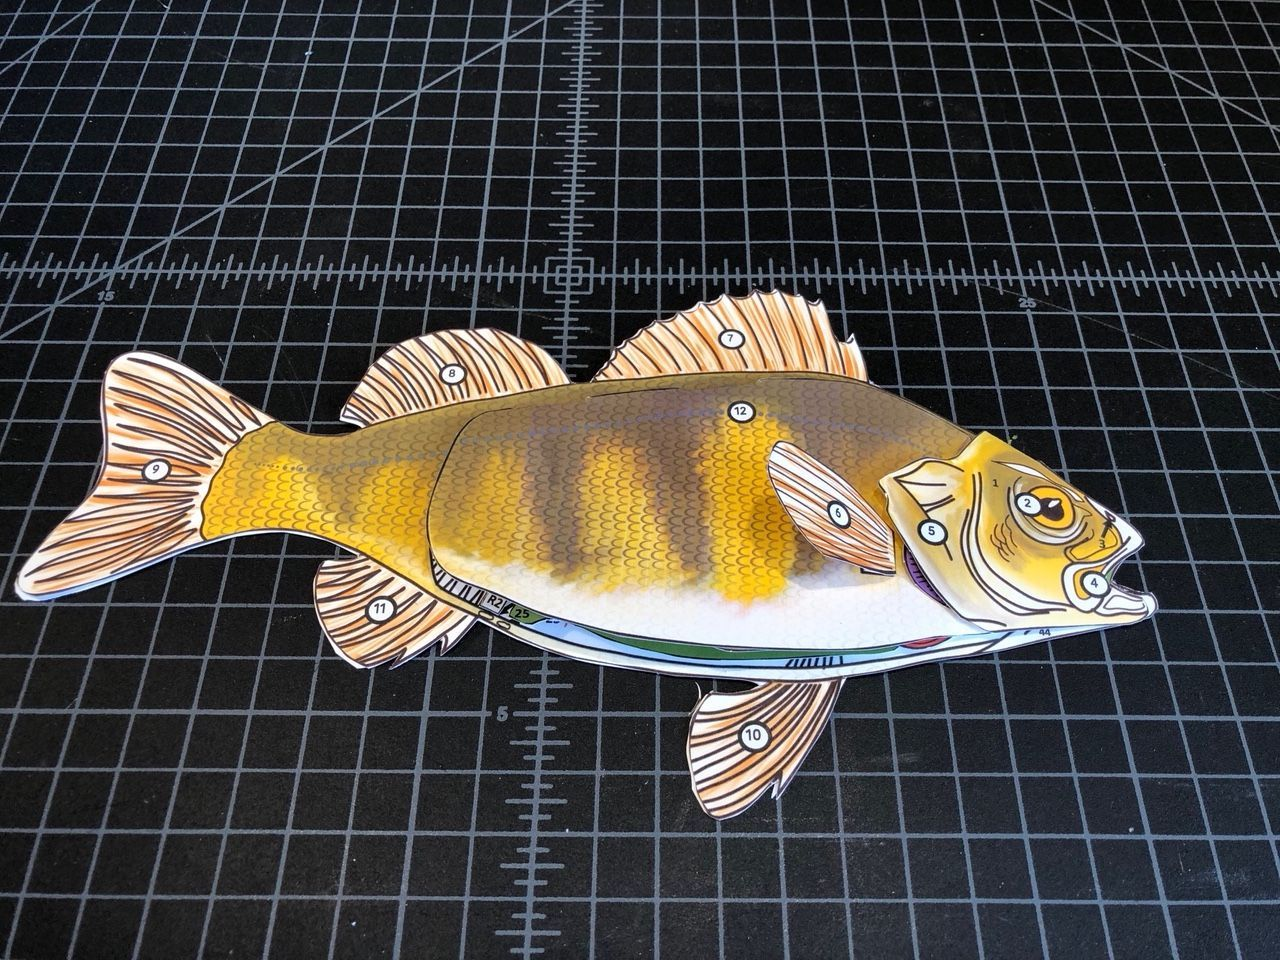 Perch 3-d scienstructable dissection paper fish model. Use as a  cruelty-free exploration [ 960 x 1280 Pixel ]